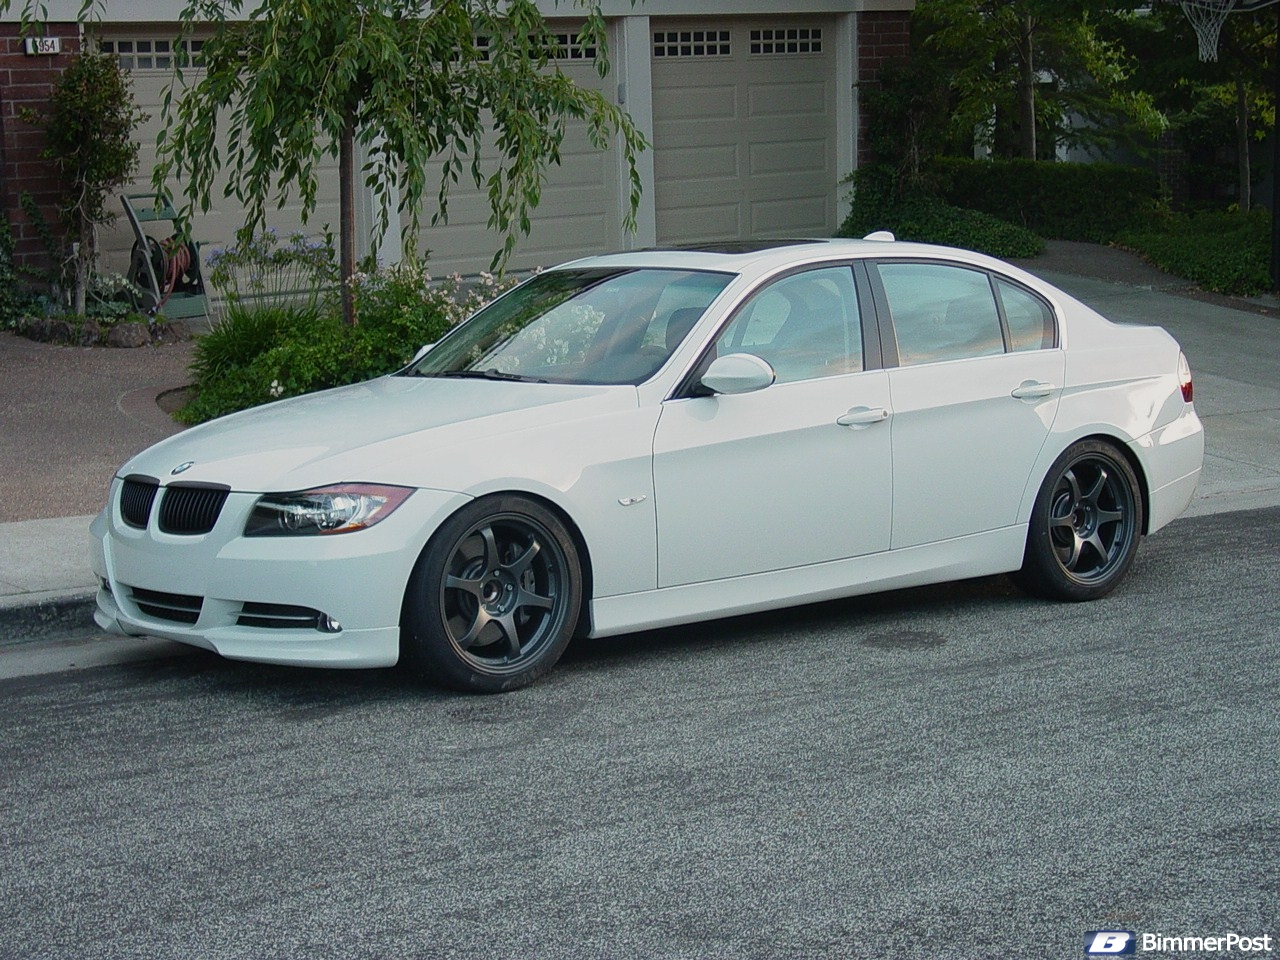 S4to335 S 2007 Bmw 335i Sedan Bimmerpost Garage